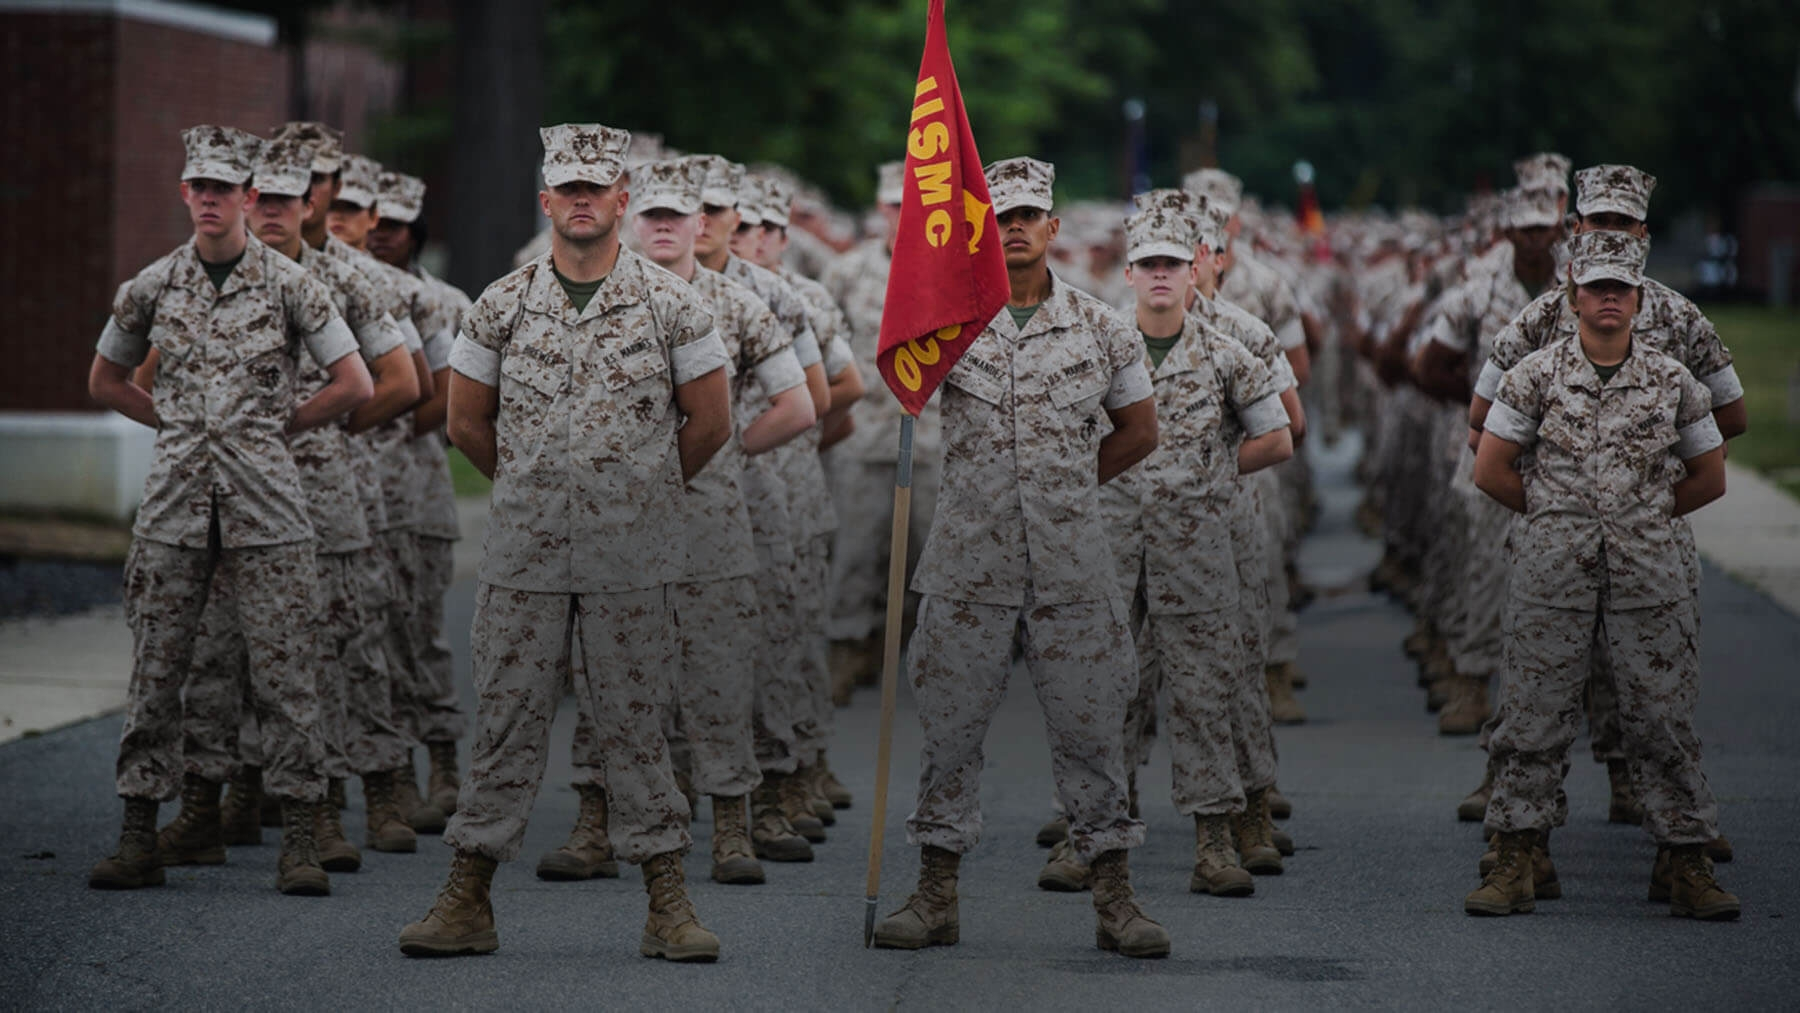 A Marine platoon stands with serious expressions.